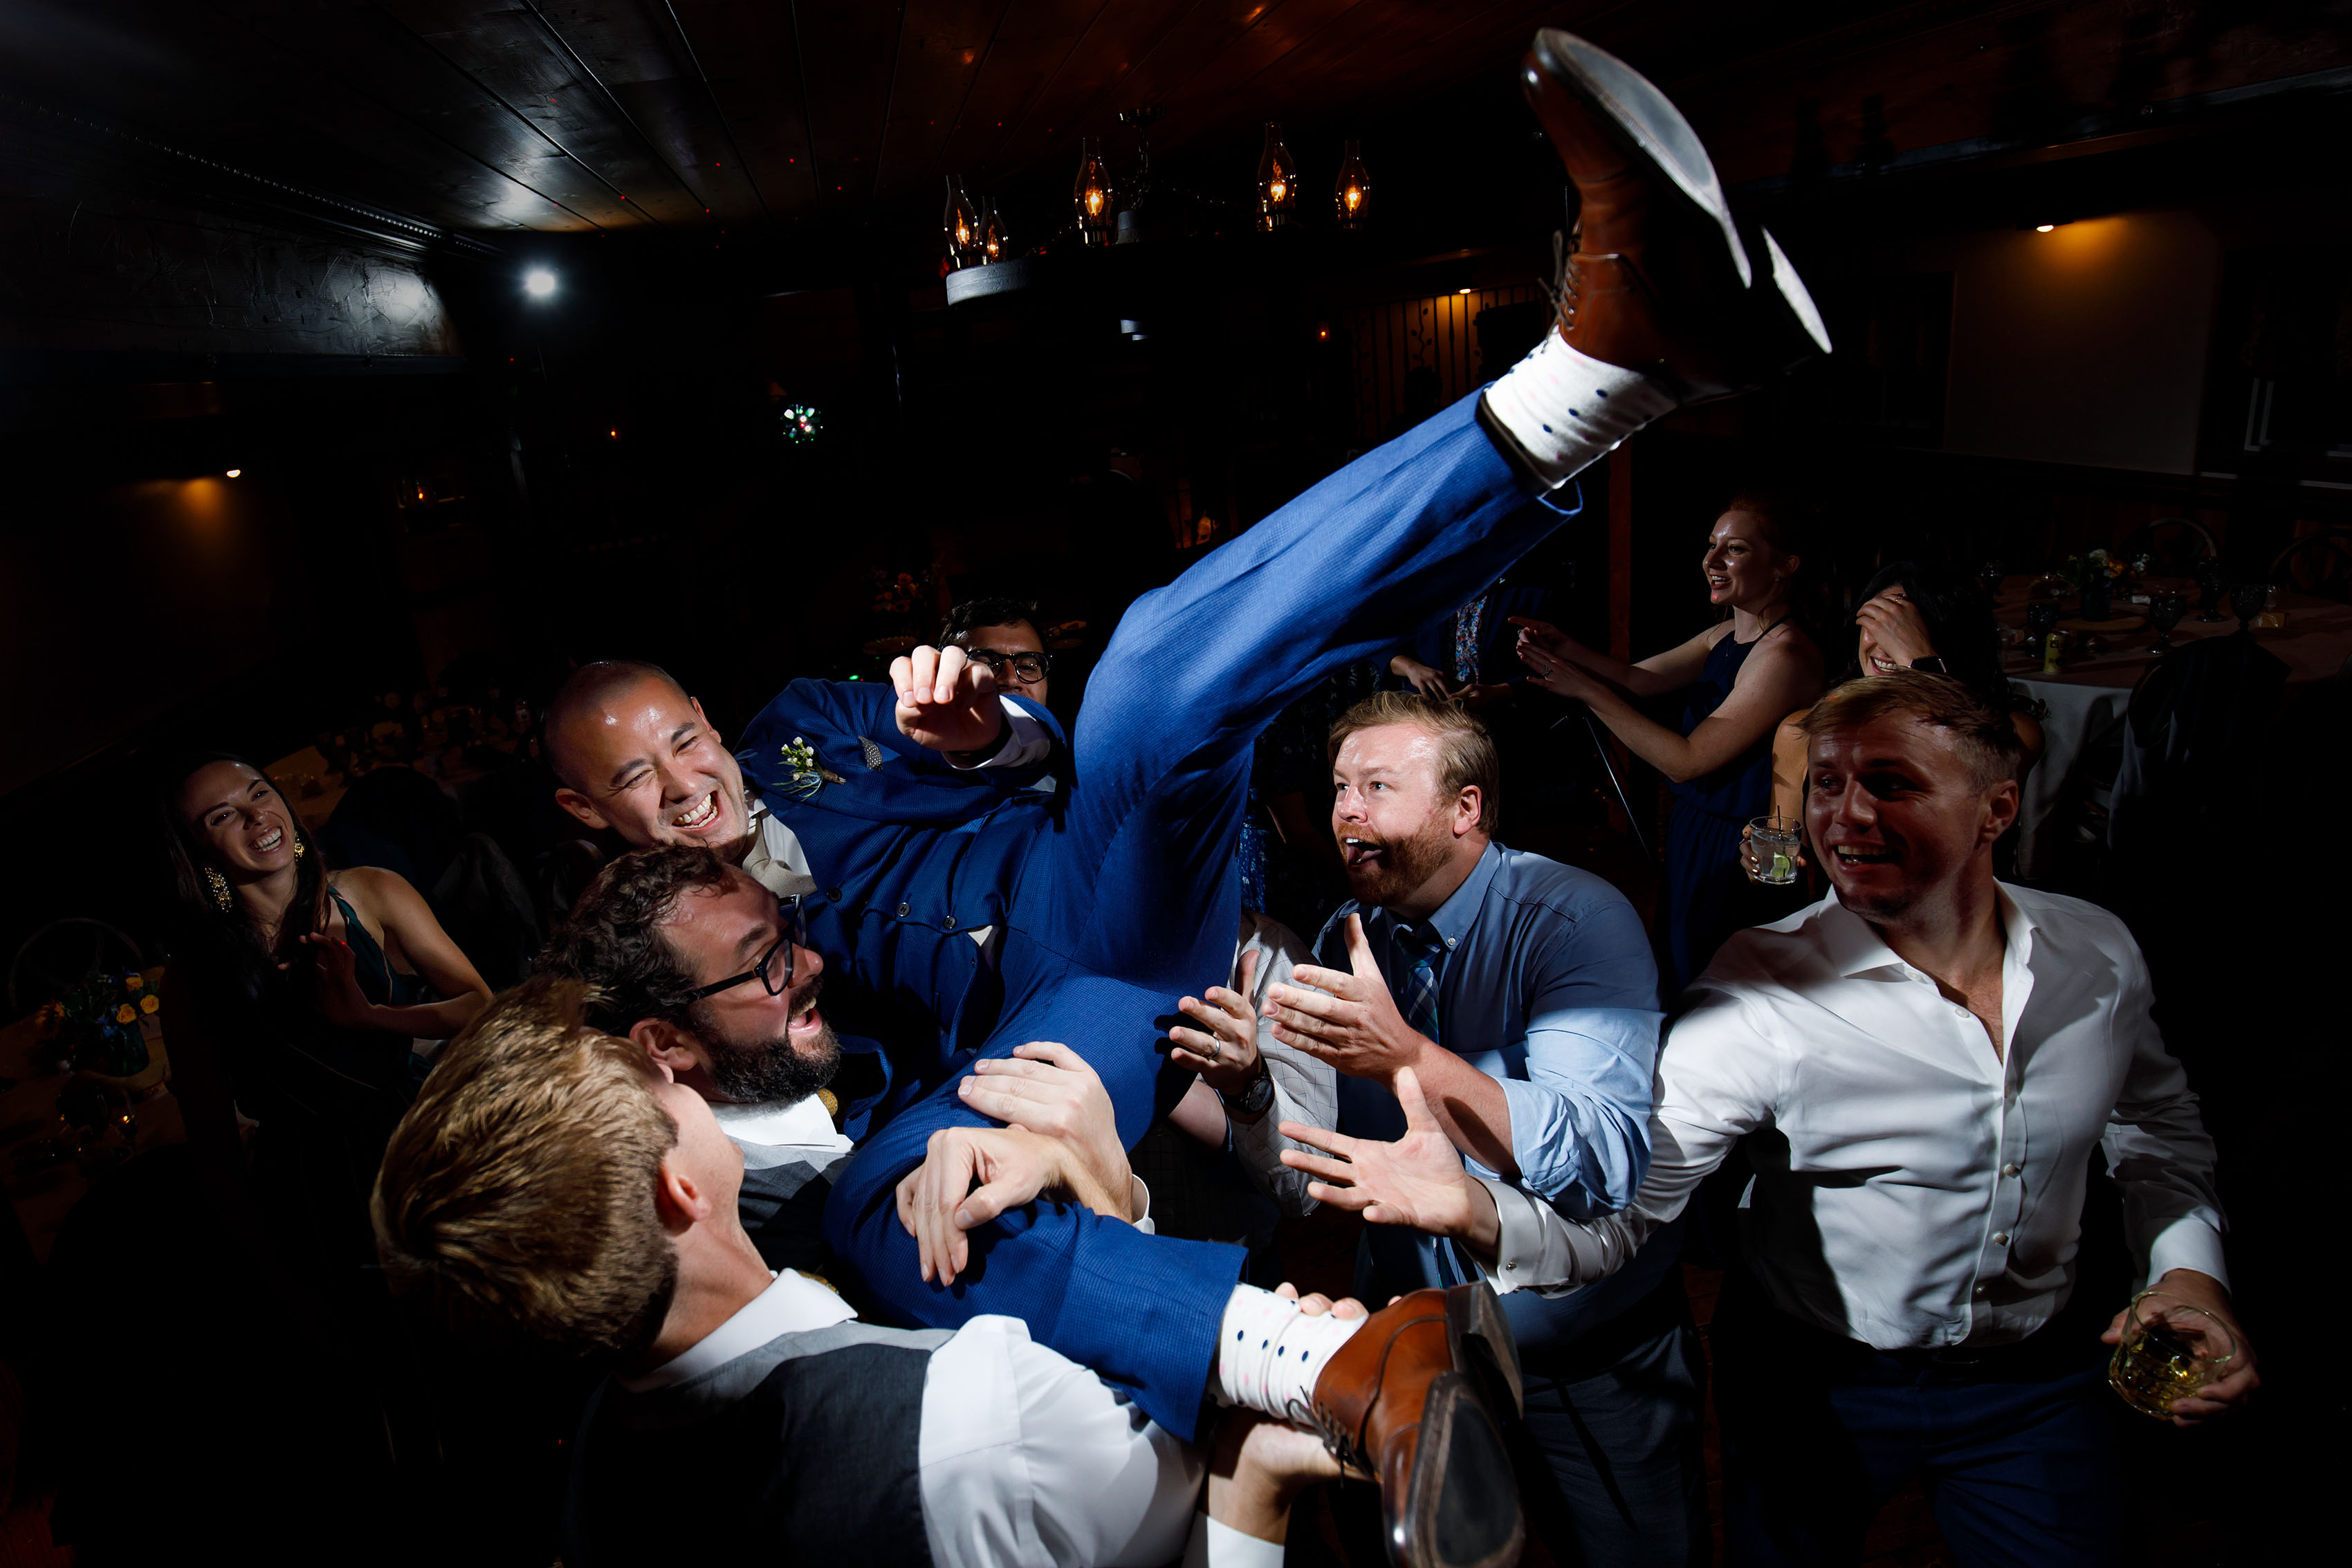 The groom is lifted in the air during a dance party at Deer Creek Valley Ranch